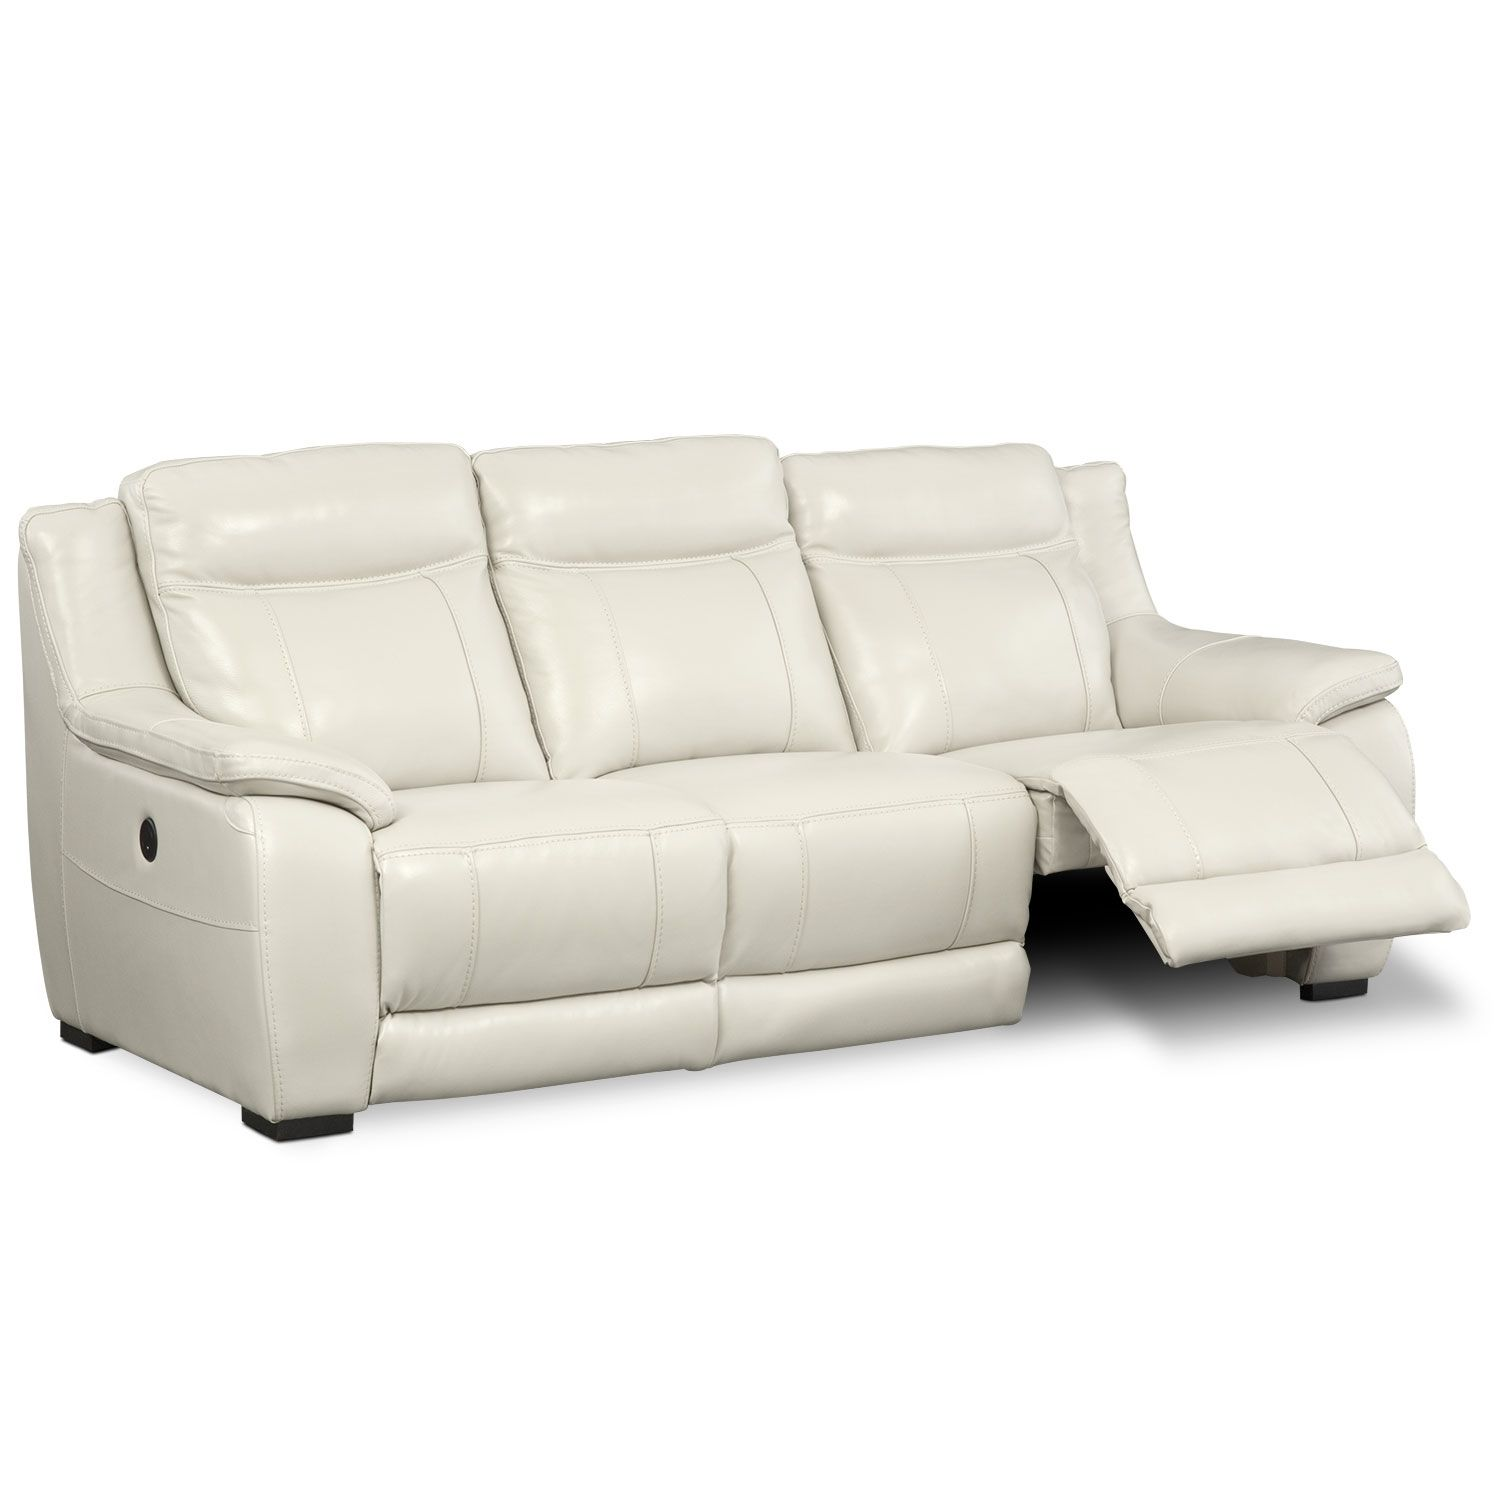 Lido Ivory Power Reclining Sofa Power Reclining Sofa Reclining Sofa Furniture Design Living Room